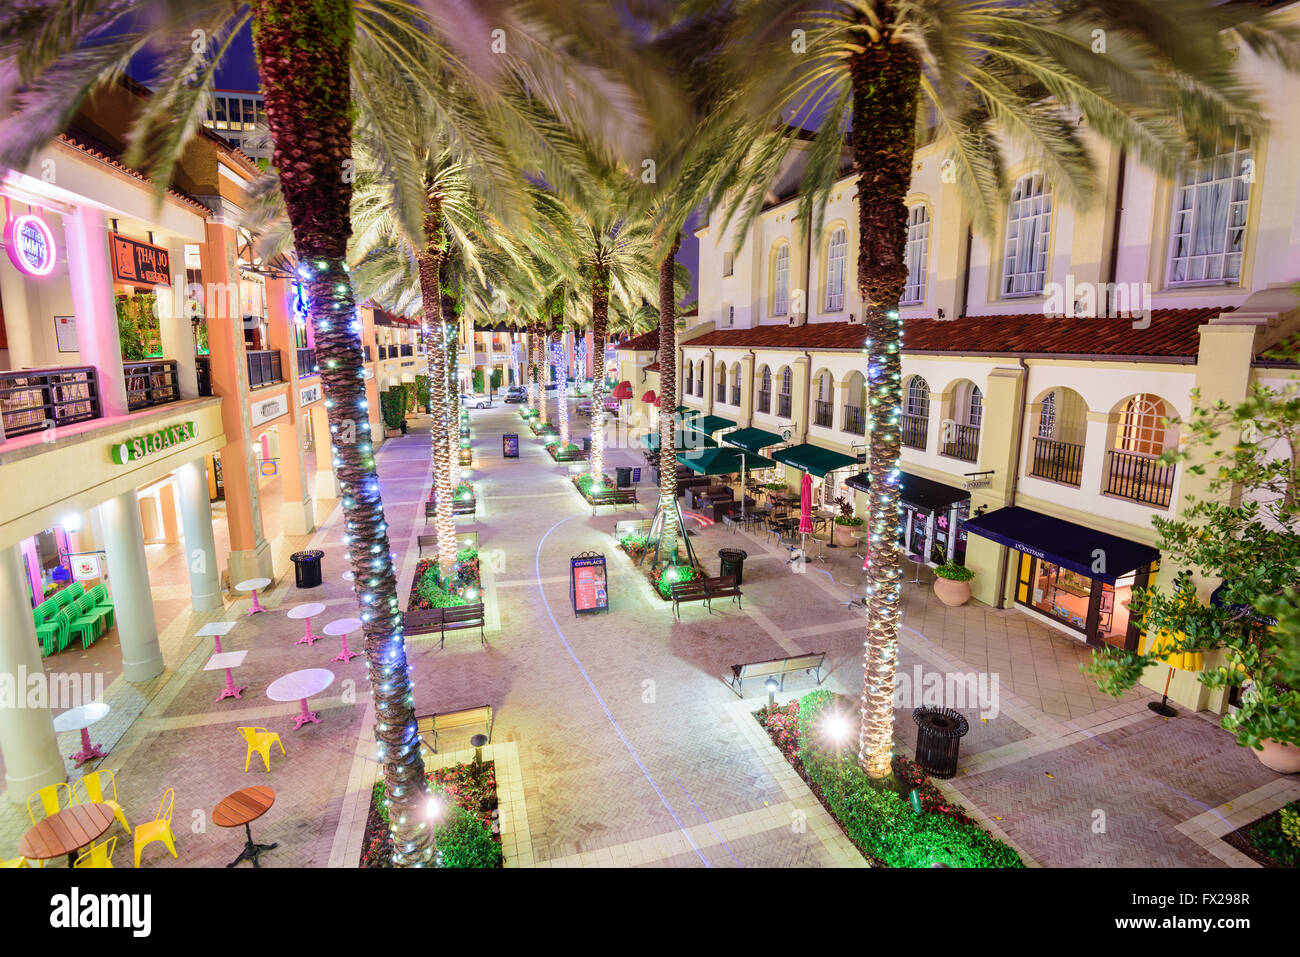 WEST PALM BEACH, FLORIDA - APRIL 3, 2016: Palm trees line CityPlace at night. The mixed-use  development was finished - Stock Image